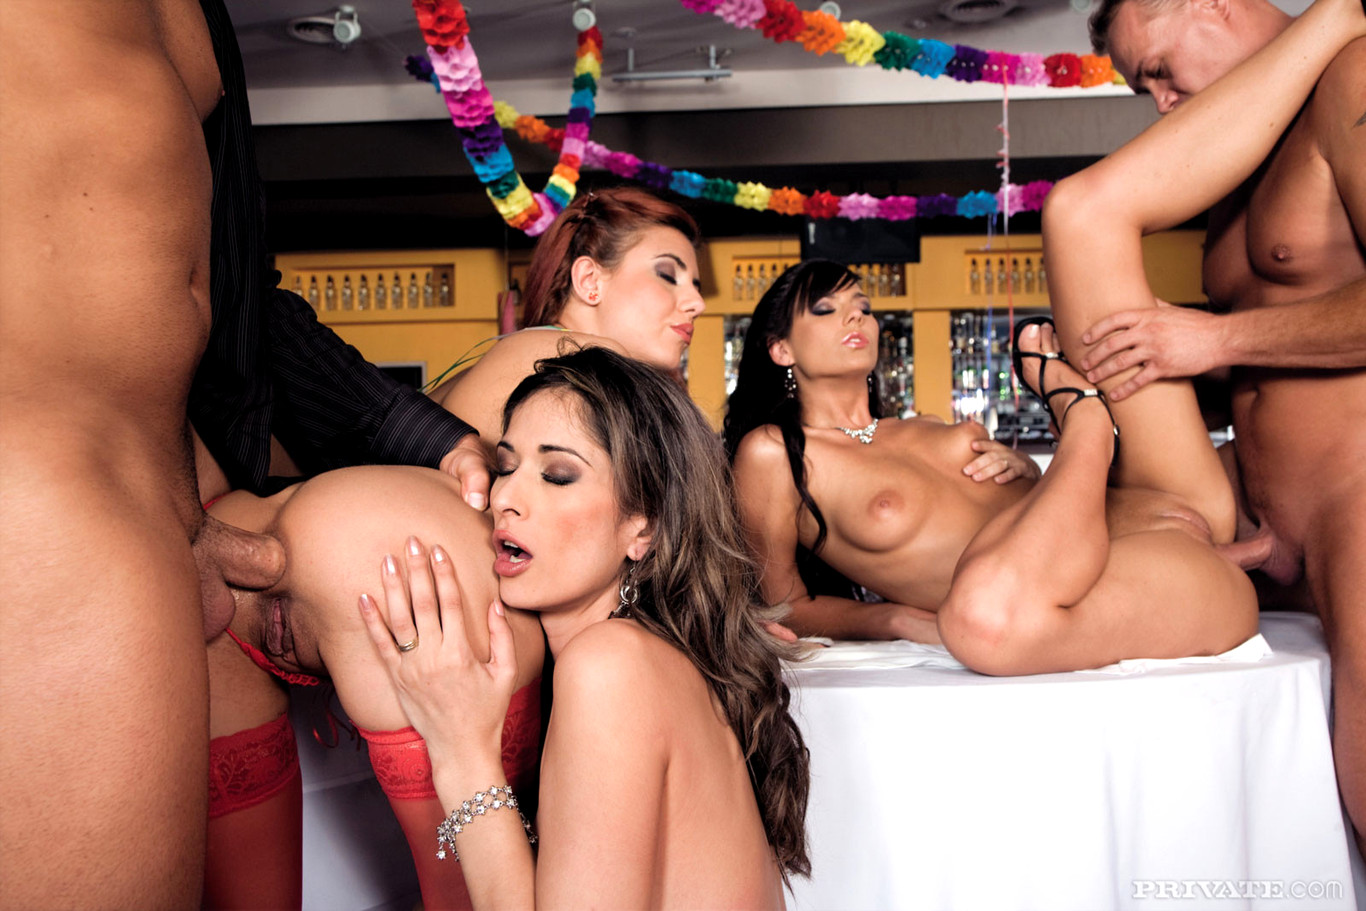 Orgy party girls #15